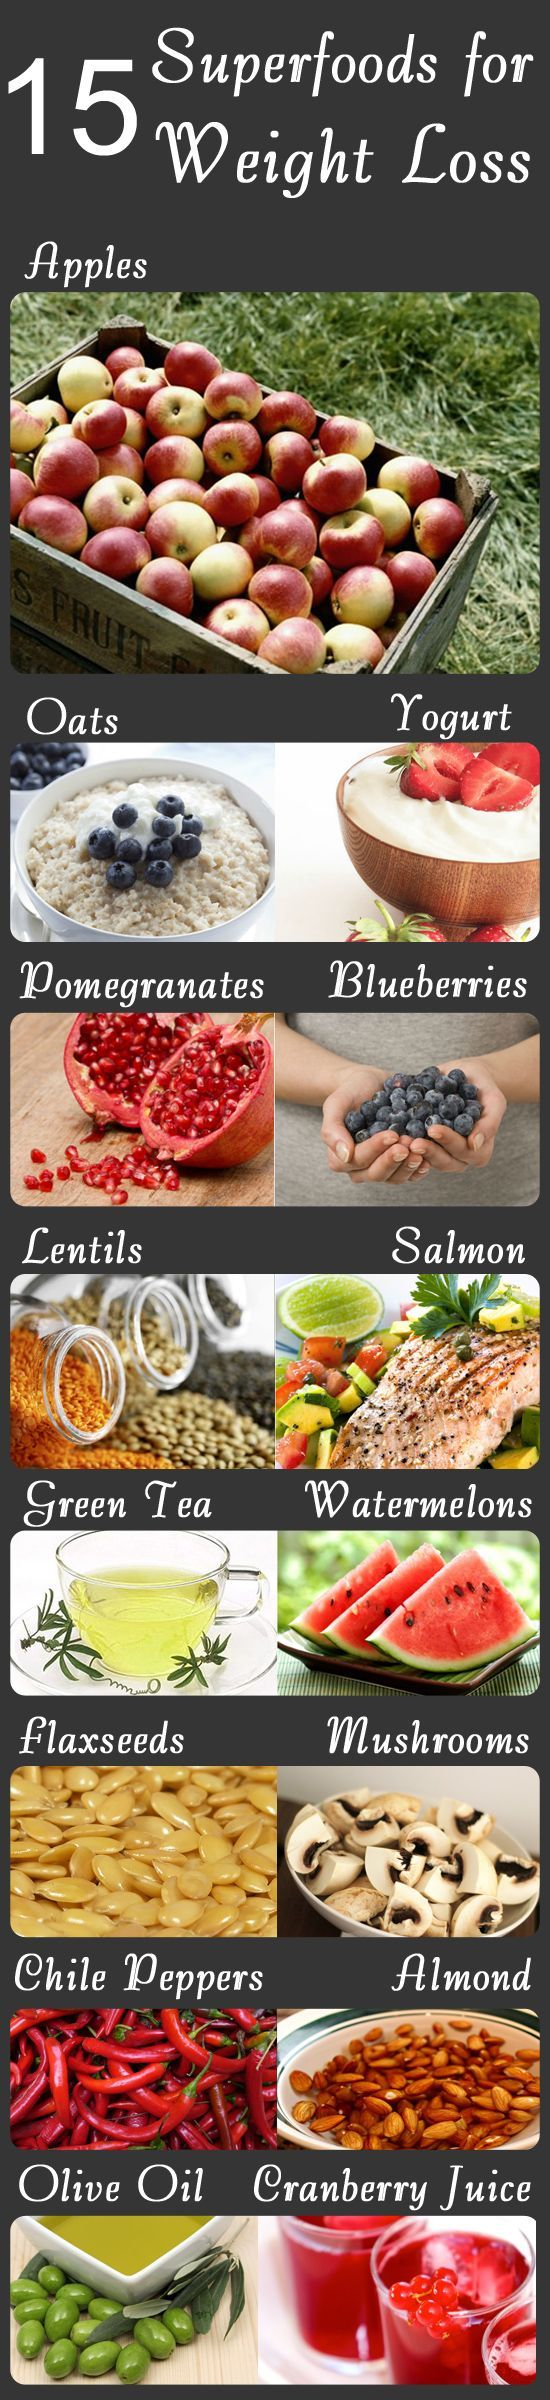 15 Super Food for Weight Loss